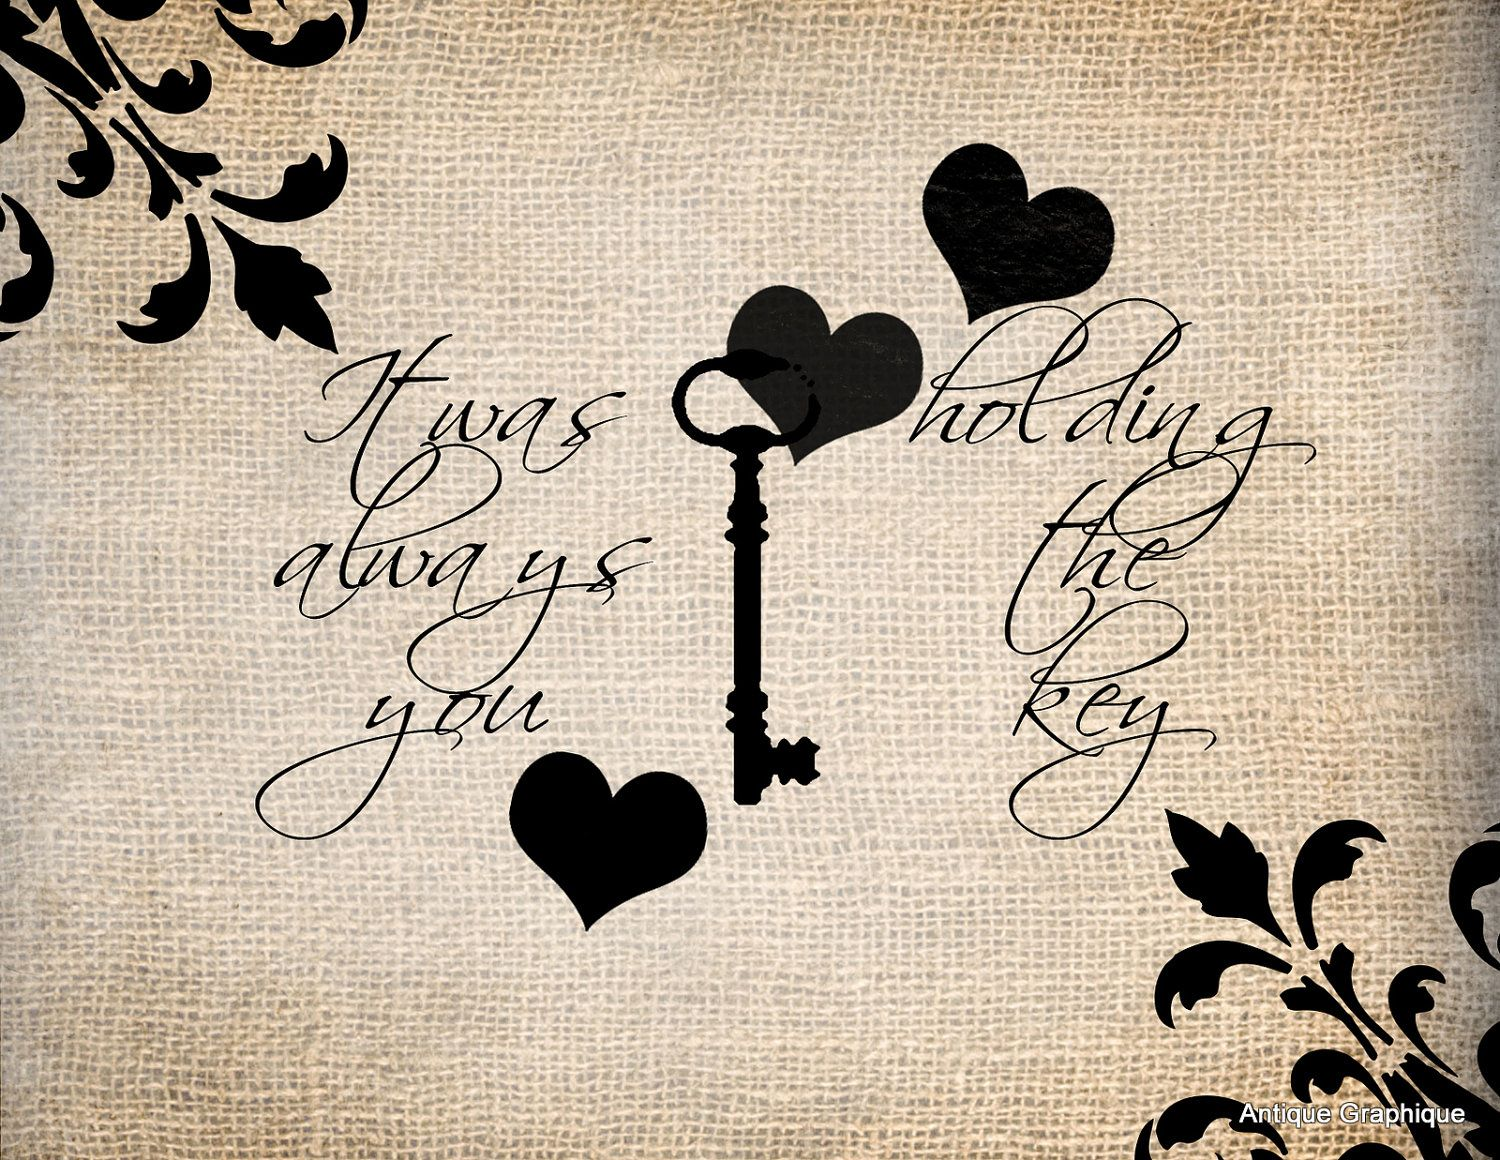 Antique Skeleton Key Brocade Love Romance 3 Quote Saying